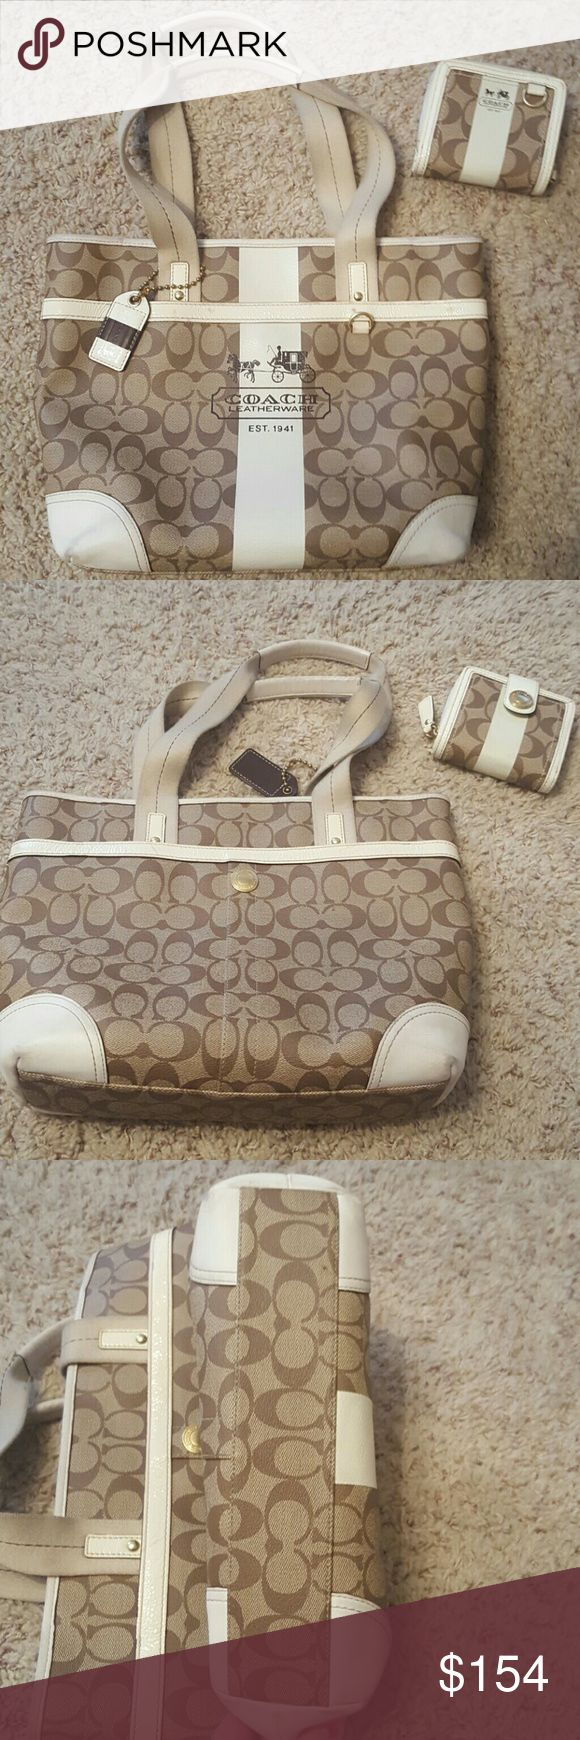 Coach purse and wallet set tan with brown c's Coach purse and wallet set  tan with brown c's and cream  leather trim overall in great shape with flaws on the corners of cream leather on bottom of the purse  and stains on front trim as seen in the pictures bag and wallet are authentic. plastic material with leather trim has two outside pockets one main inside pocket with one inside zip pocket and two smaller slots clean on inside no stains! from a smoke free home!! please see pics for leather…